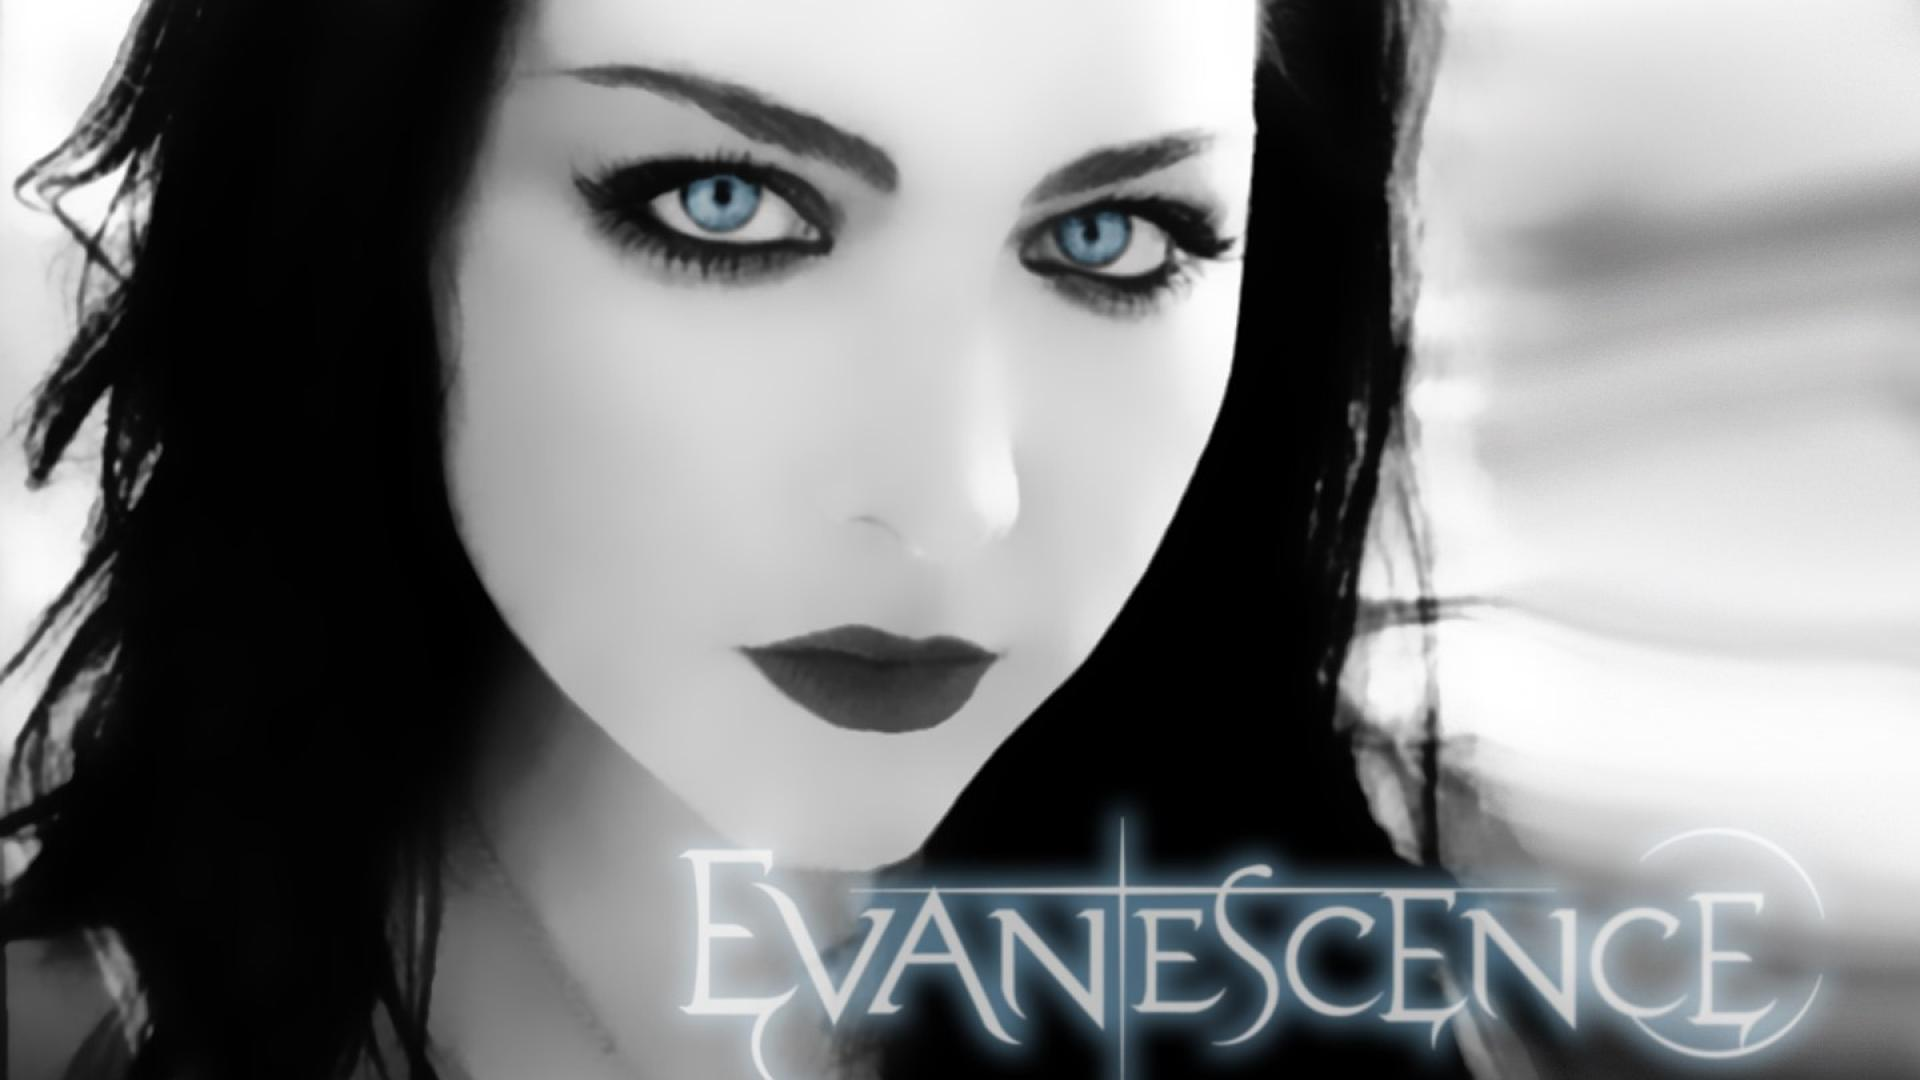 Evanescence Background